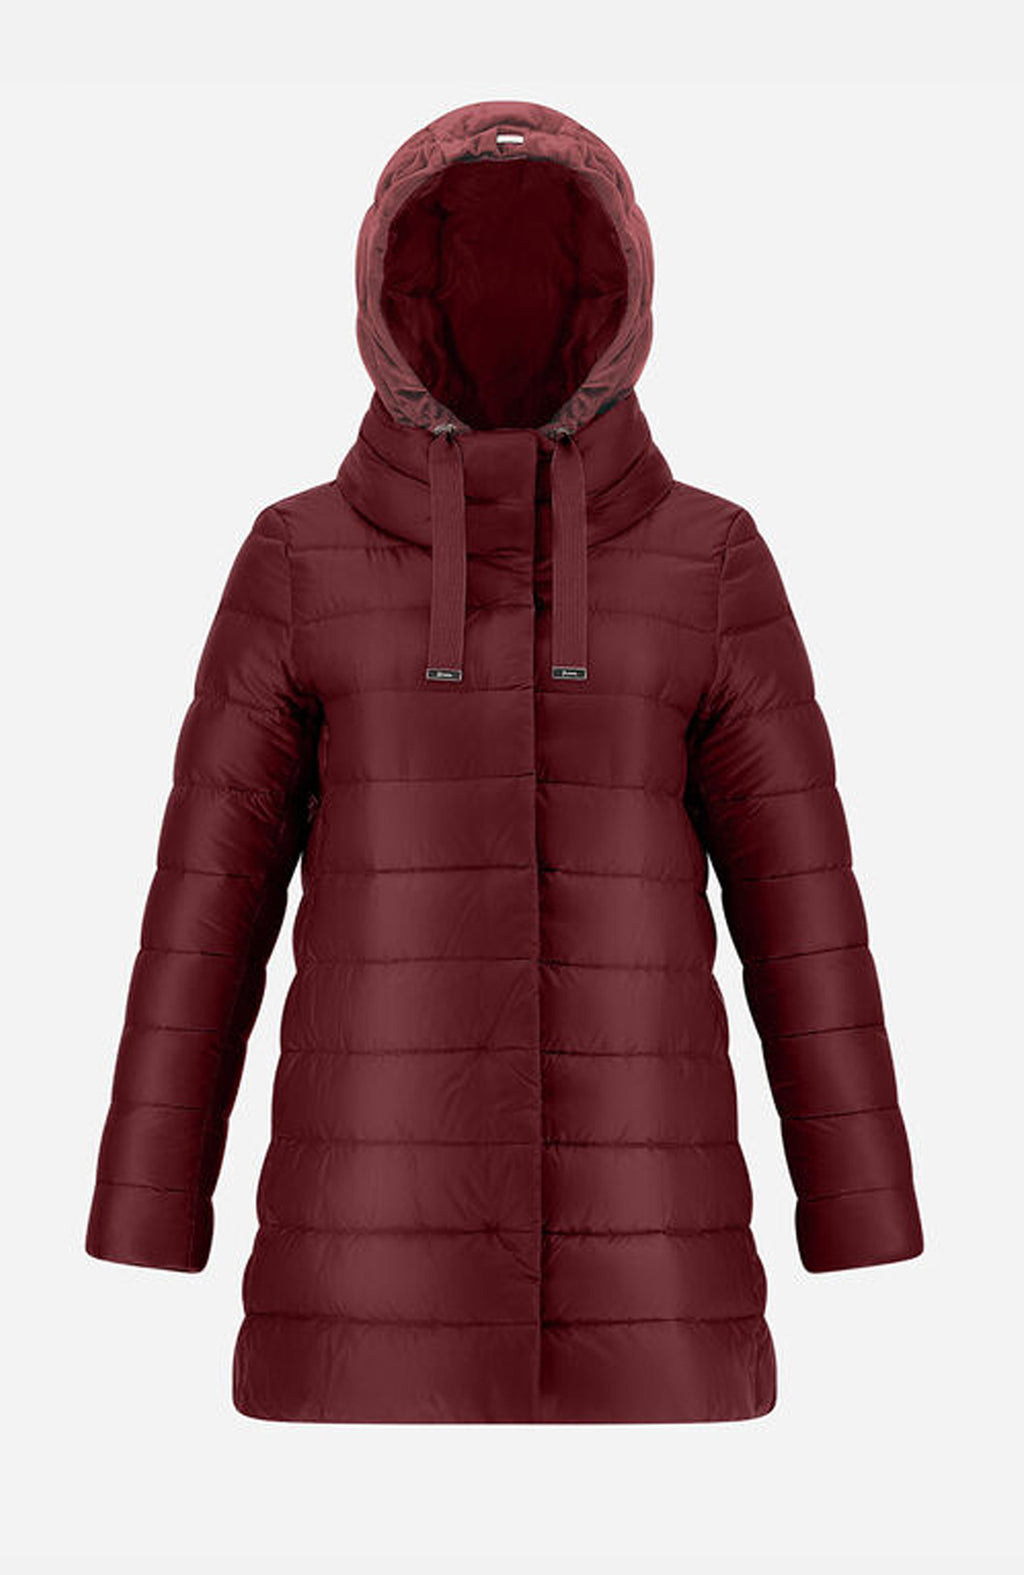 Herno Burgundy Ultralight A-Shape Puffer Jacket